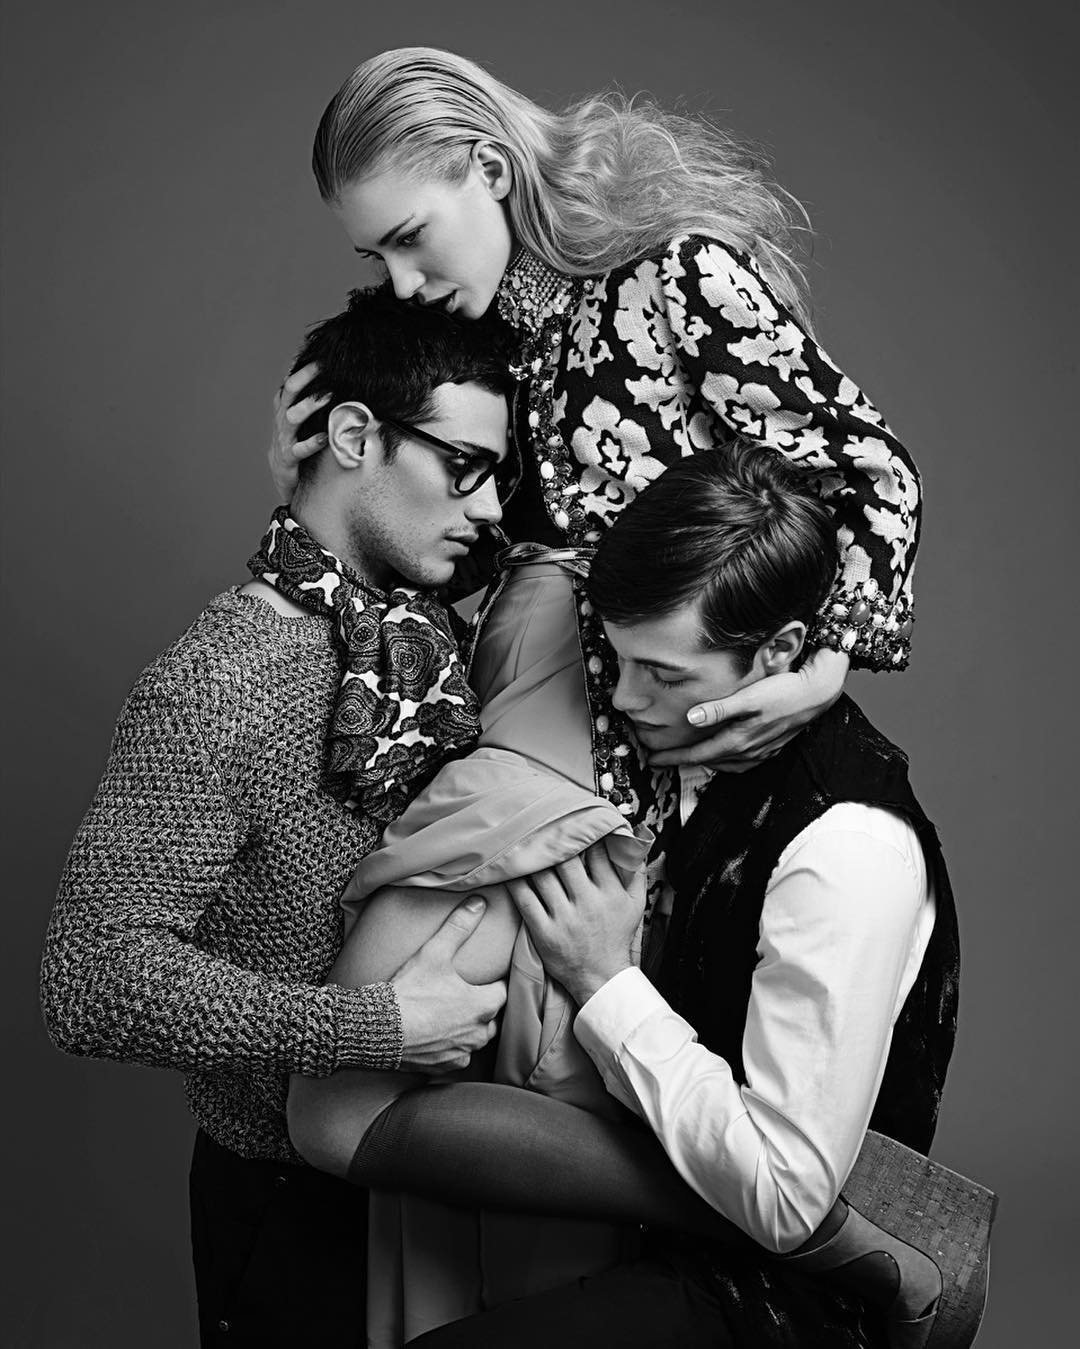 photograph of a threesome by nicolas guerin